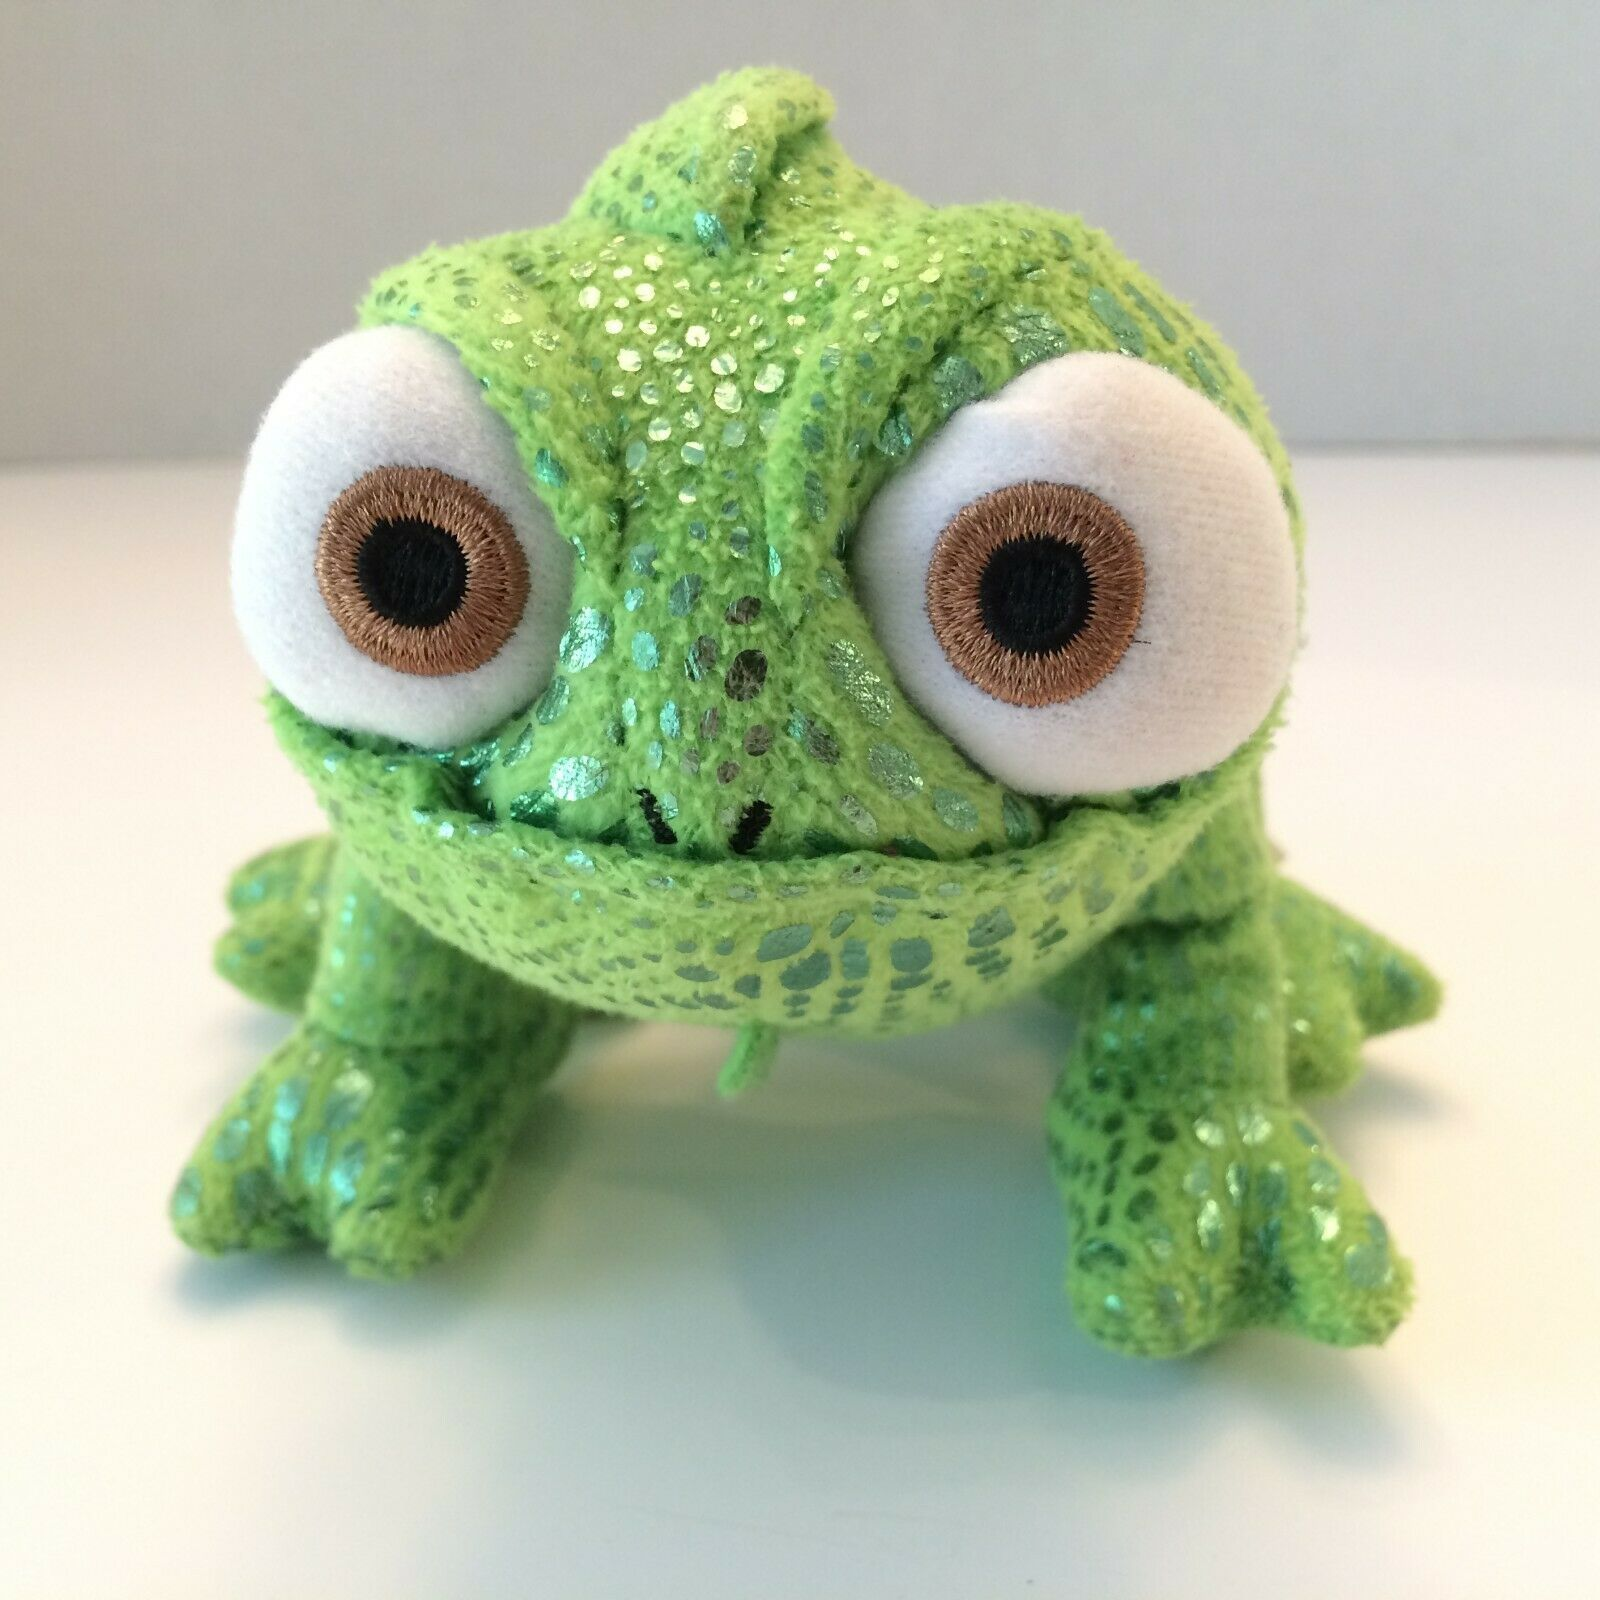 "Primary image for Disney Store Tangled Pascal the Chameleon 8"" Green Plush Stuffed Toy Lizard"